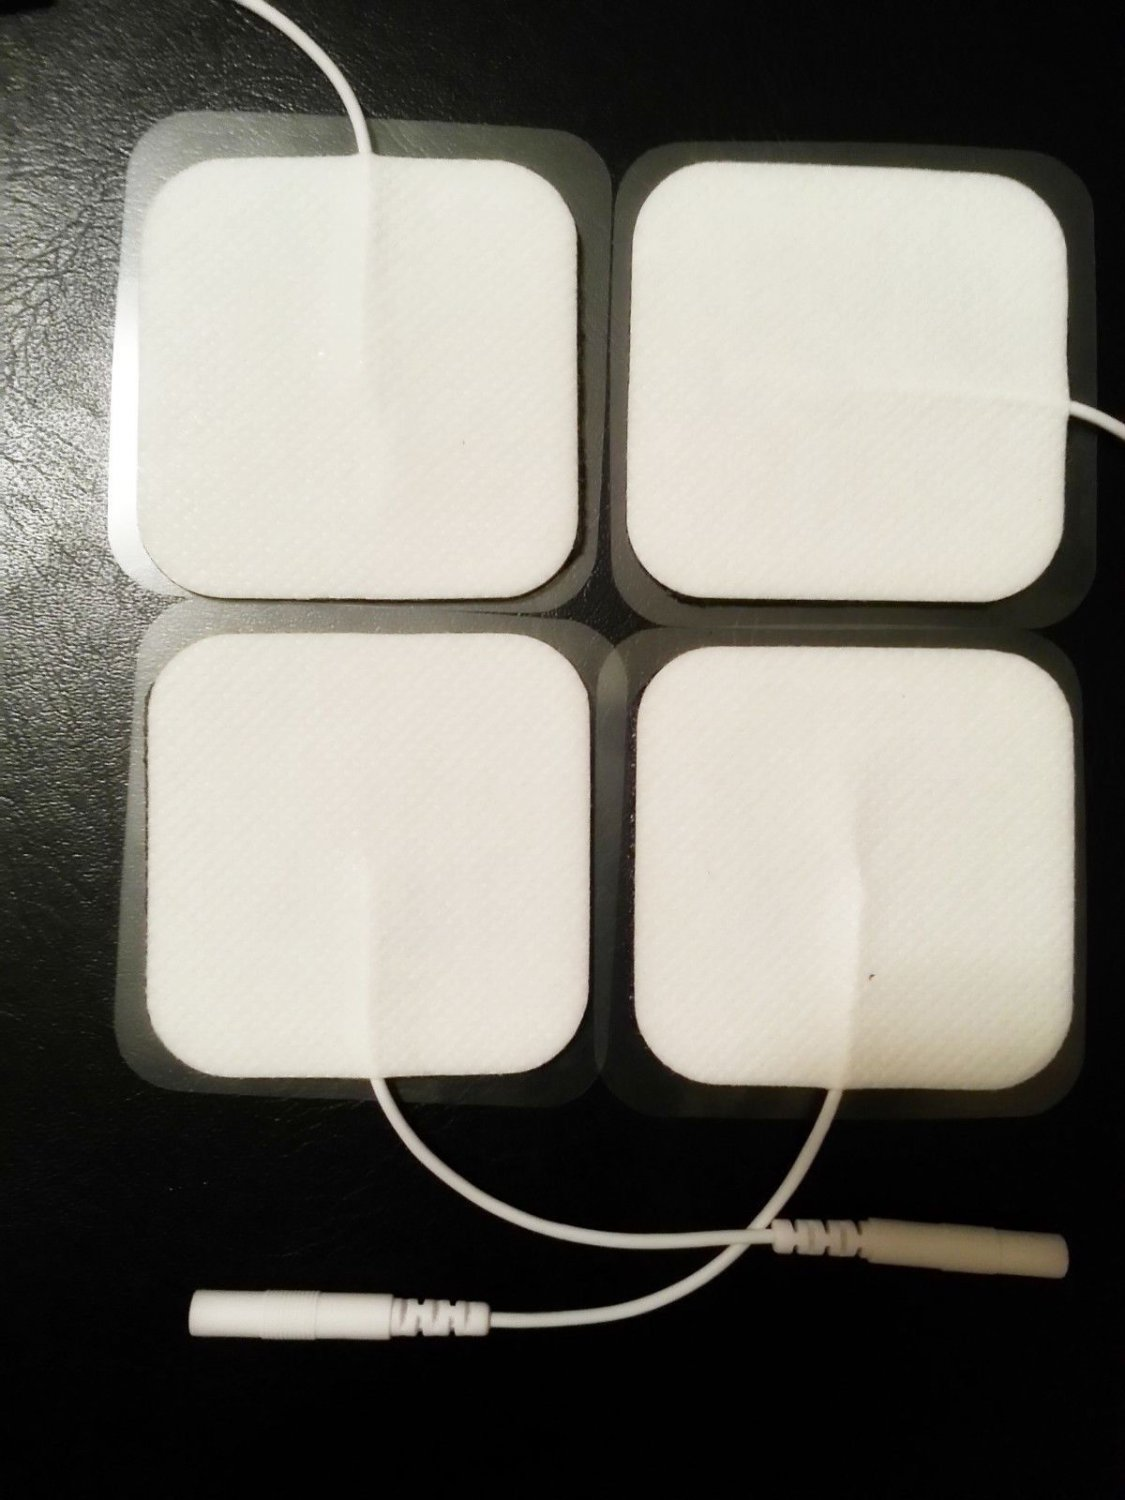 8 PC SQUARE REPLACEMENT ELECTRODE MASSAGE PADS FOR ESTIM ELECTROTHERAPY UNIT